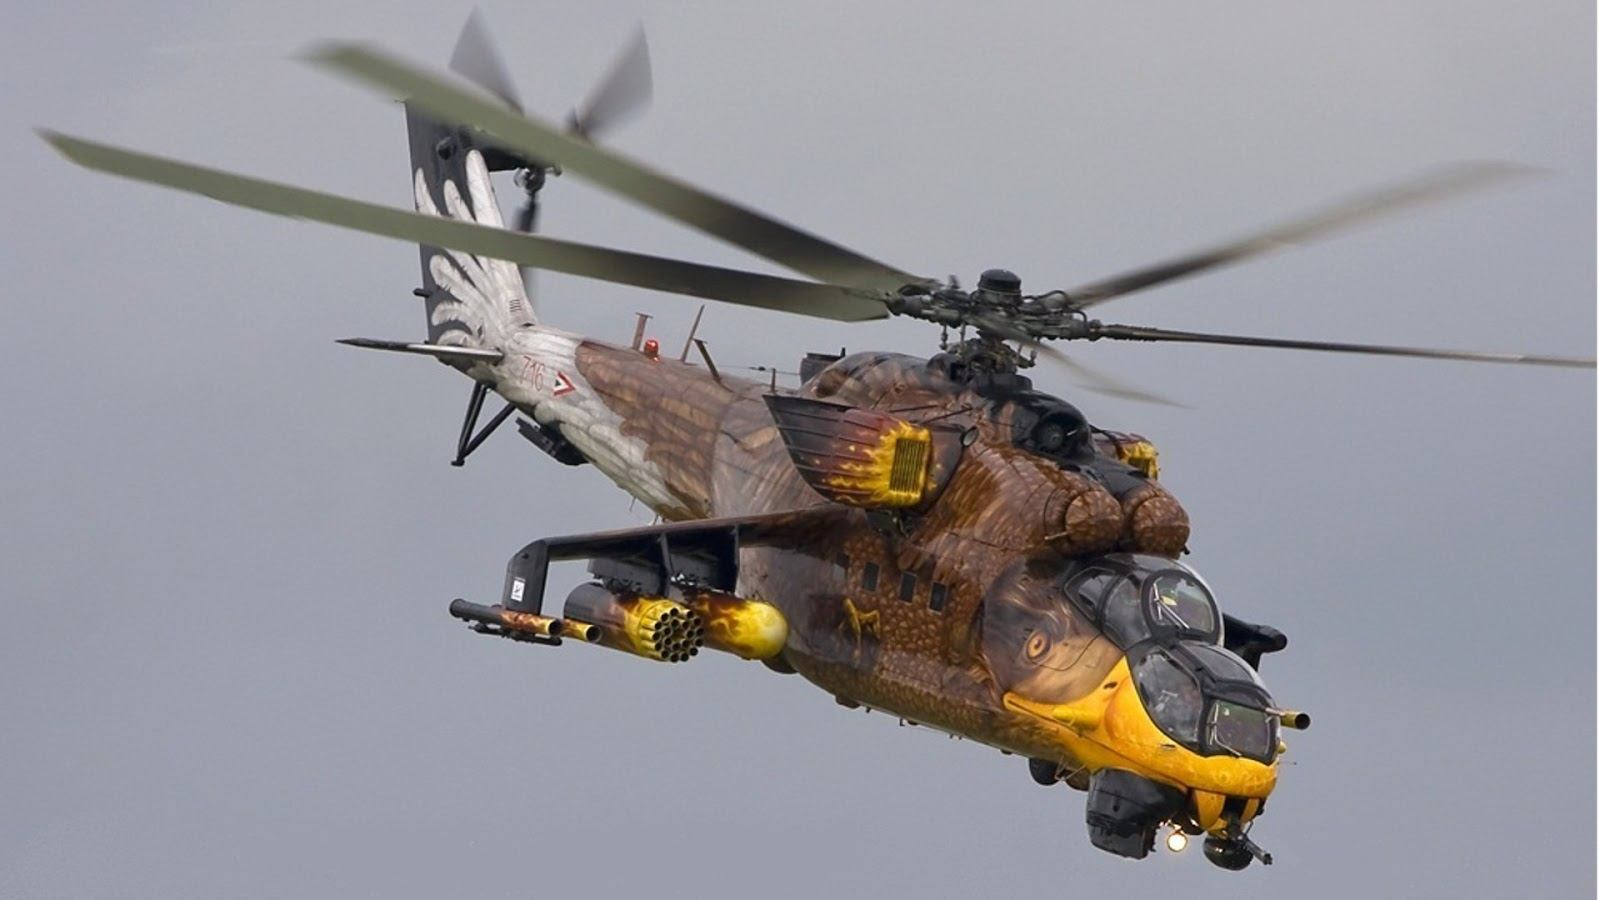 Cool Helicopter Paint Jobs